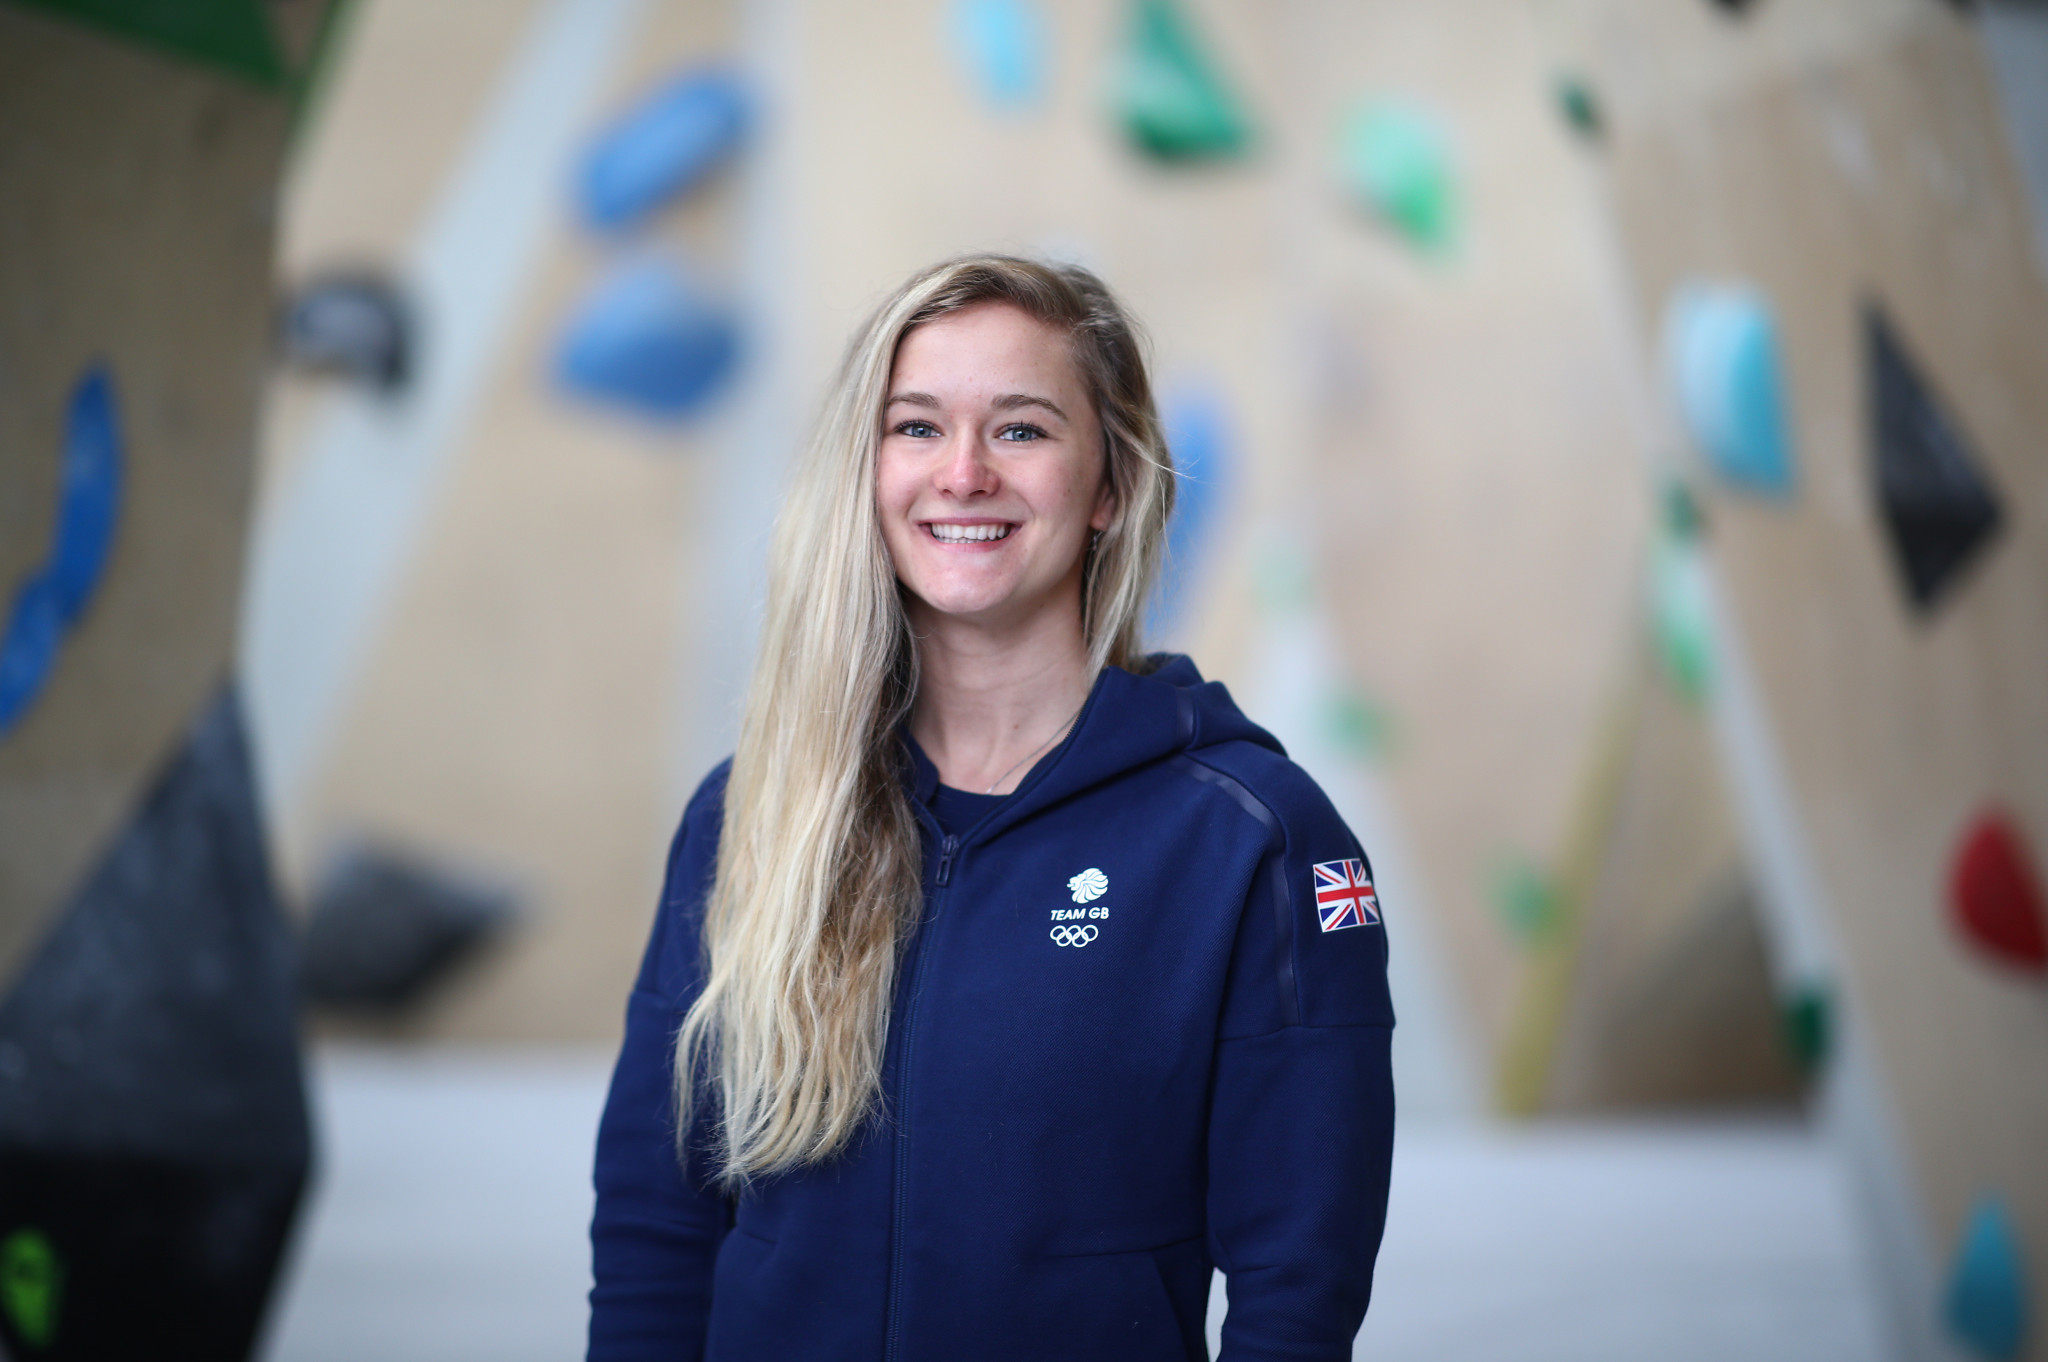 Coxsey becomes first British sport climber to make it to Tokyo 2020